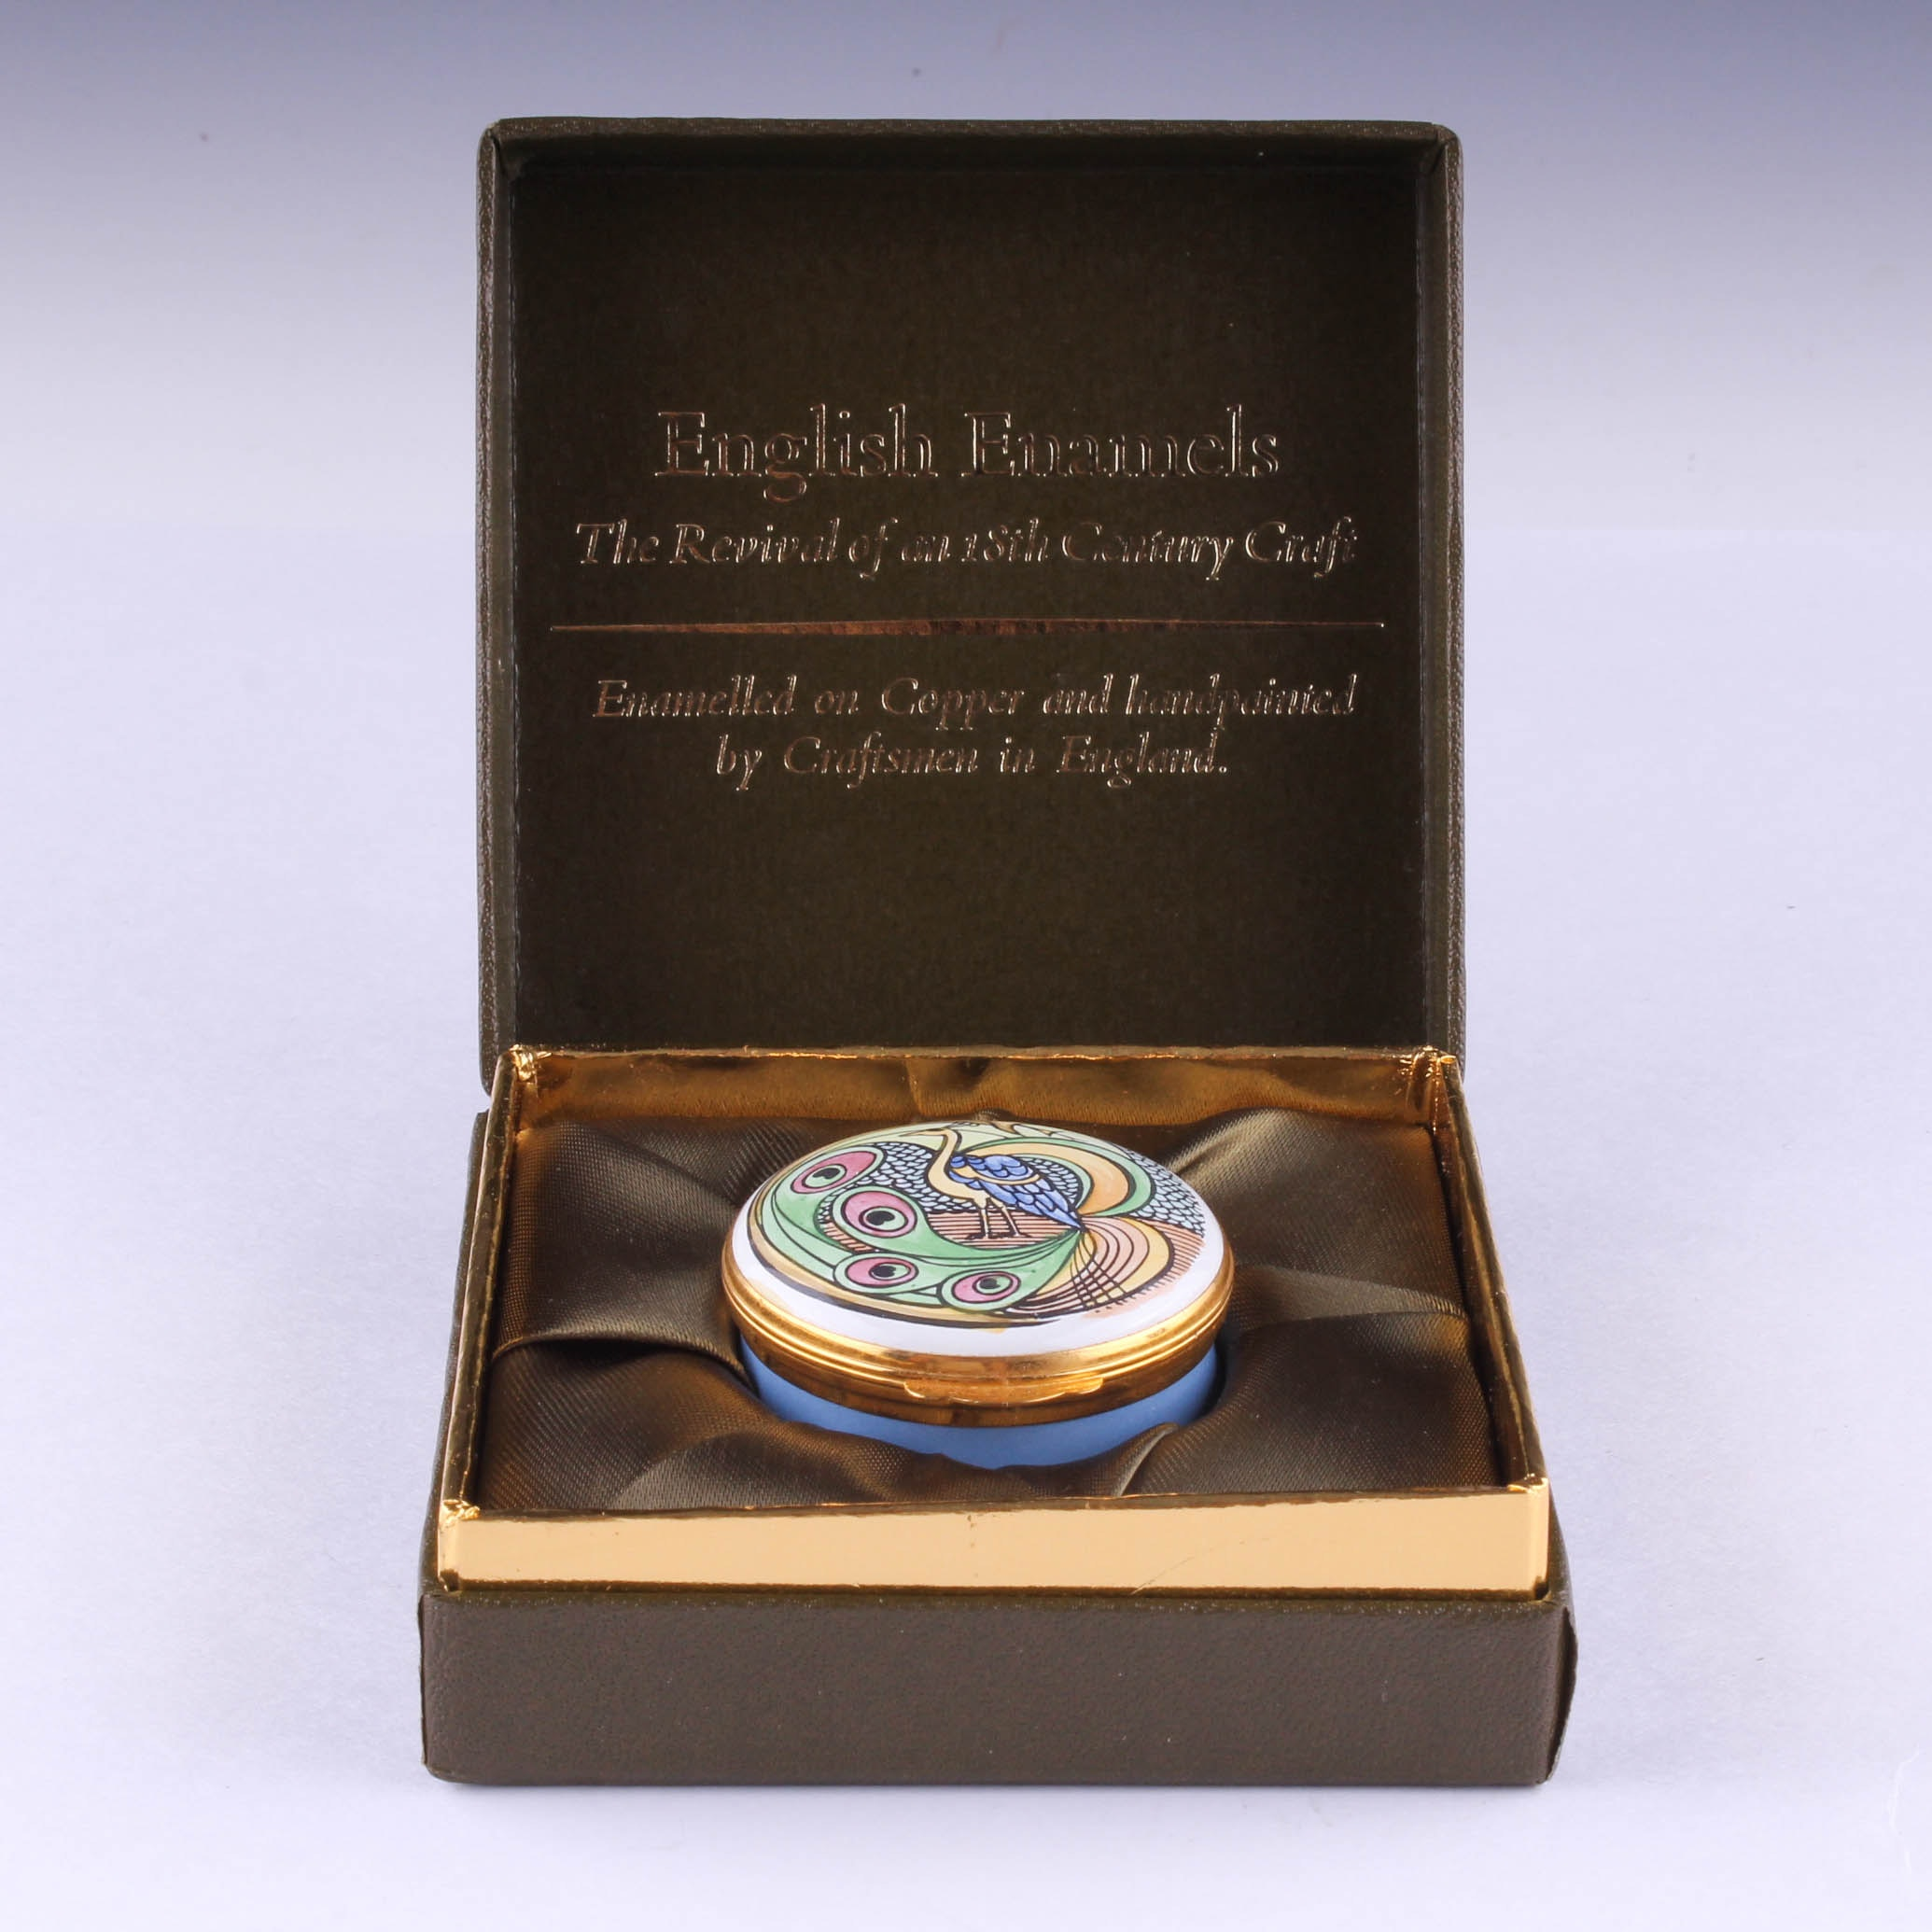 Hand-Painted Enamel Trinket Box by Crummles & Co.